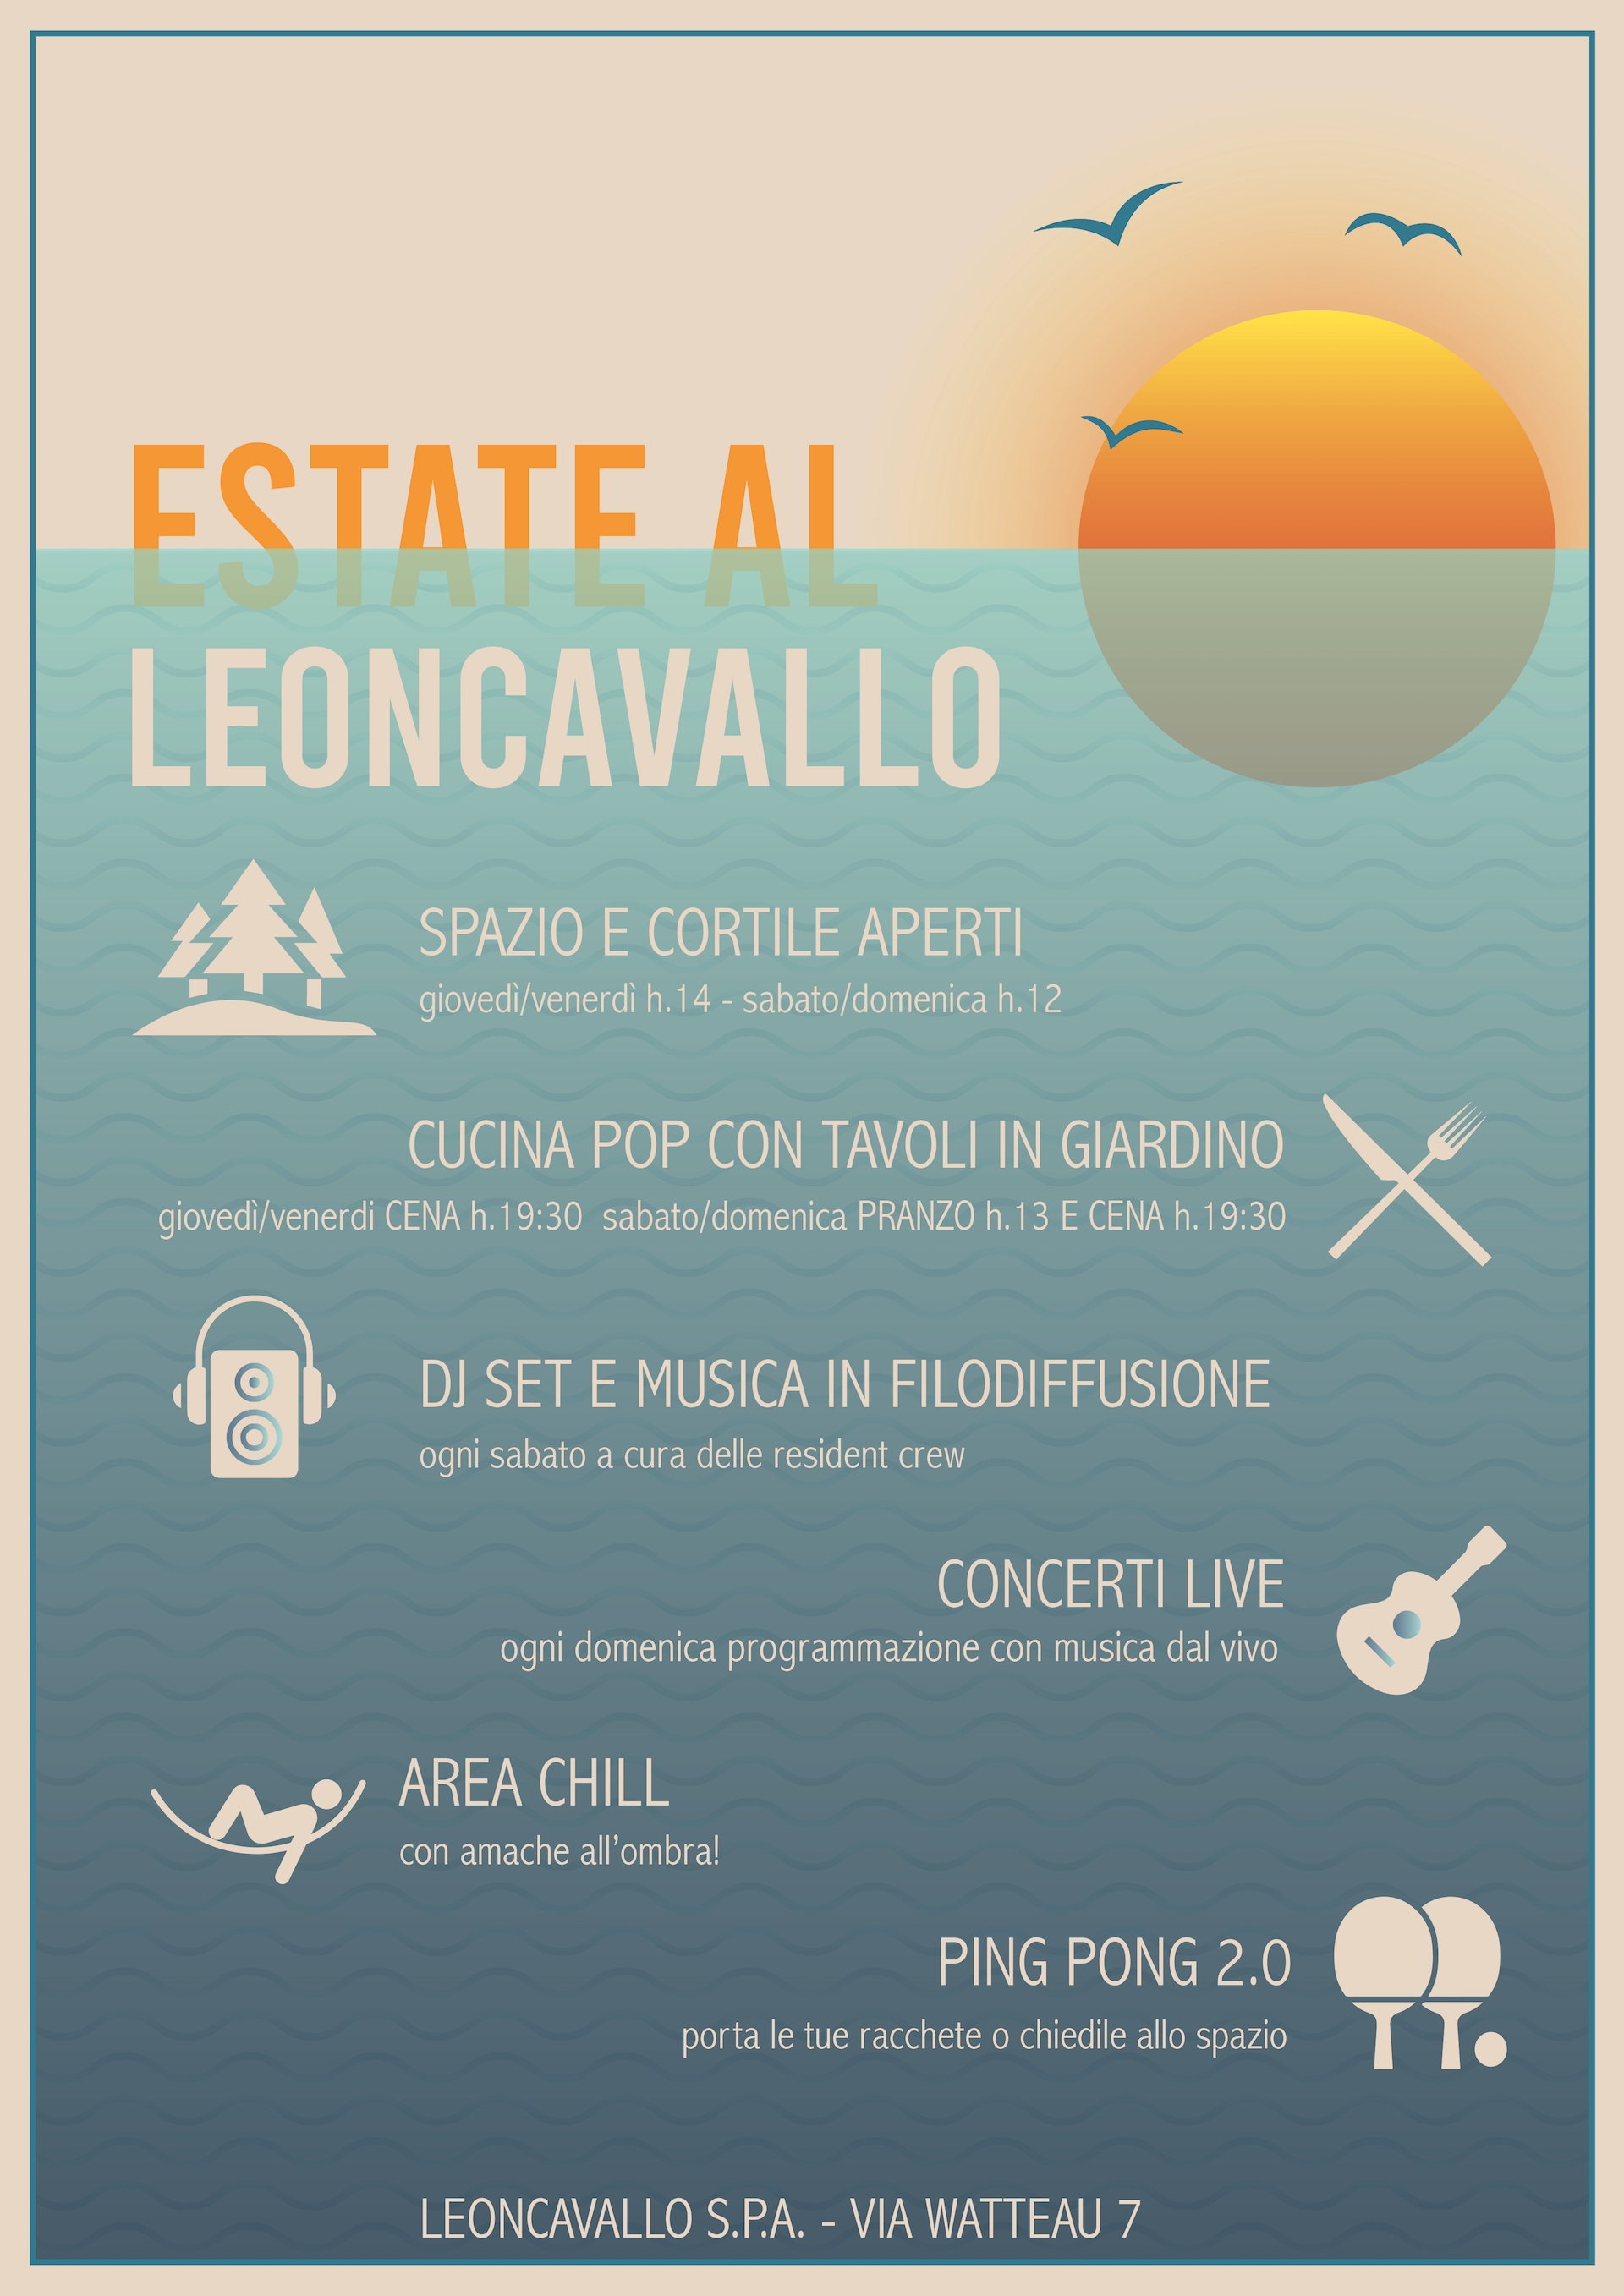 ESTATE AL LEONCAVALLO!